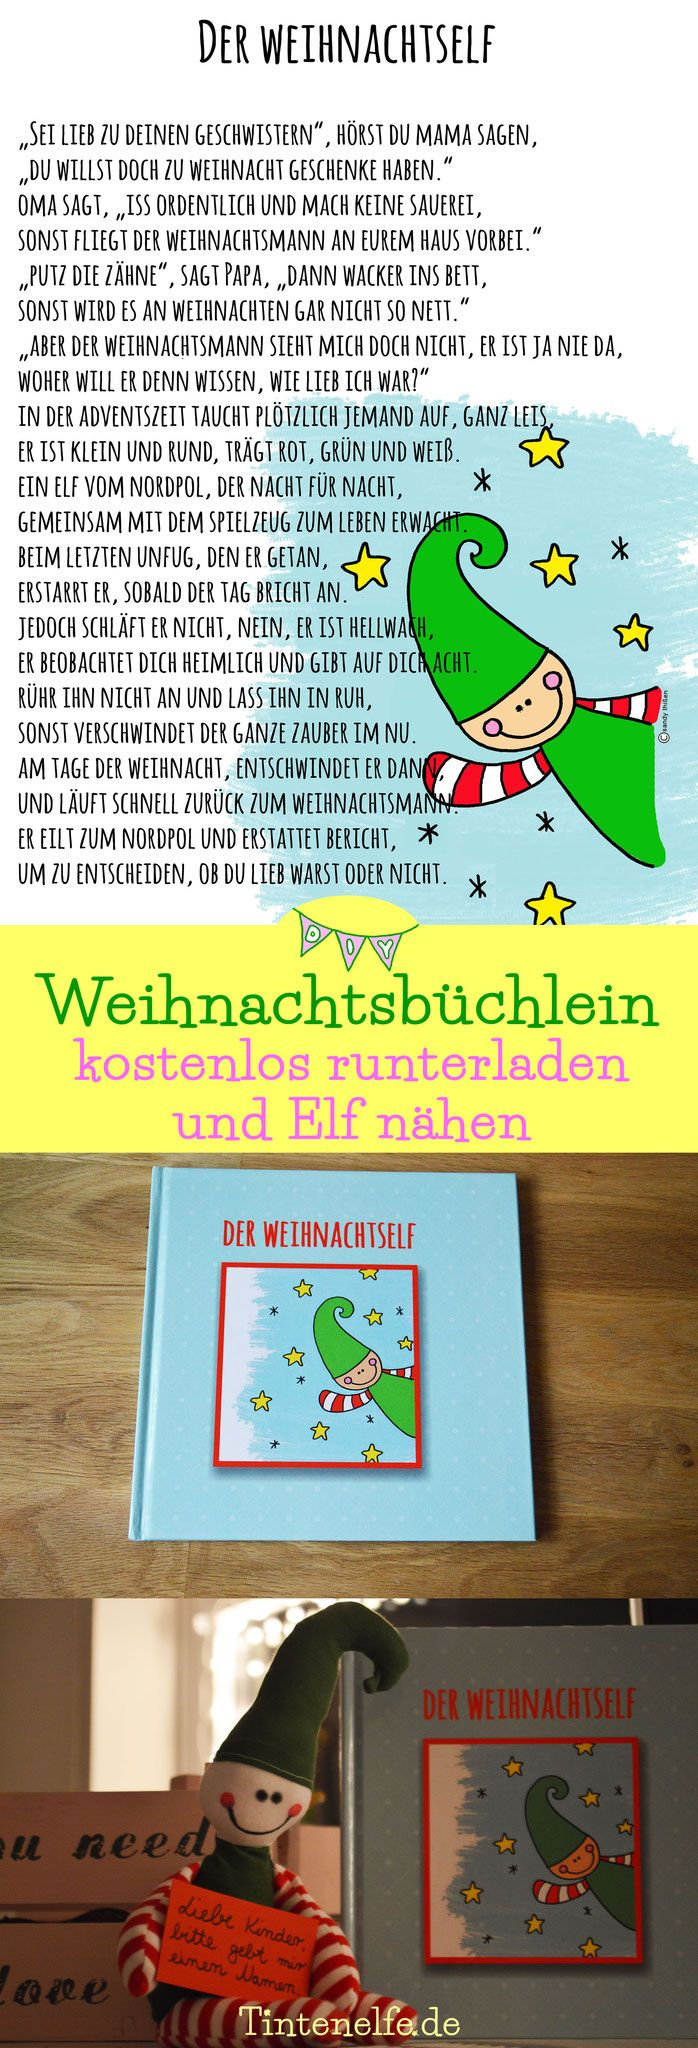 25 einzigartige weihnachtsgeschichte f r kinder ideen auf. Black Bedroom Furniture Sets. Home Design Ideas